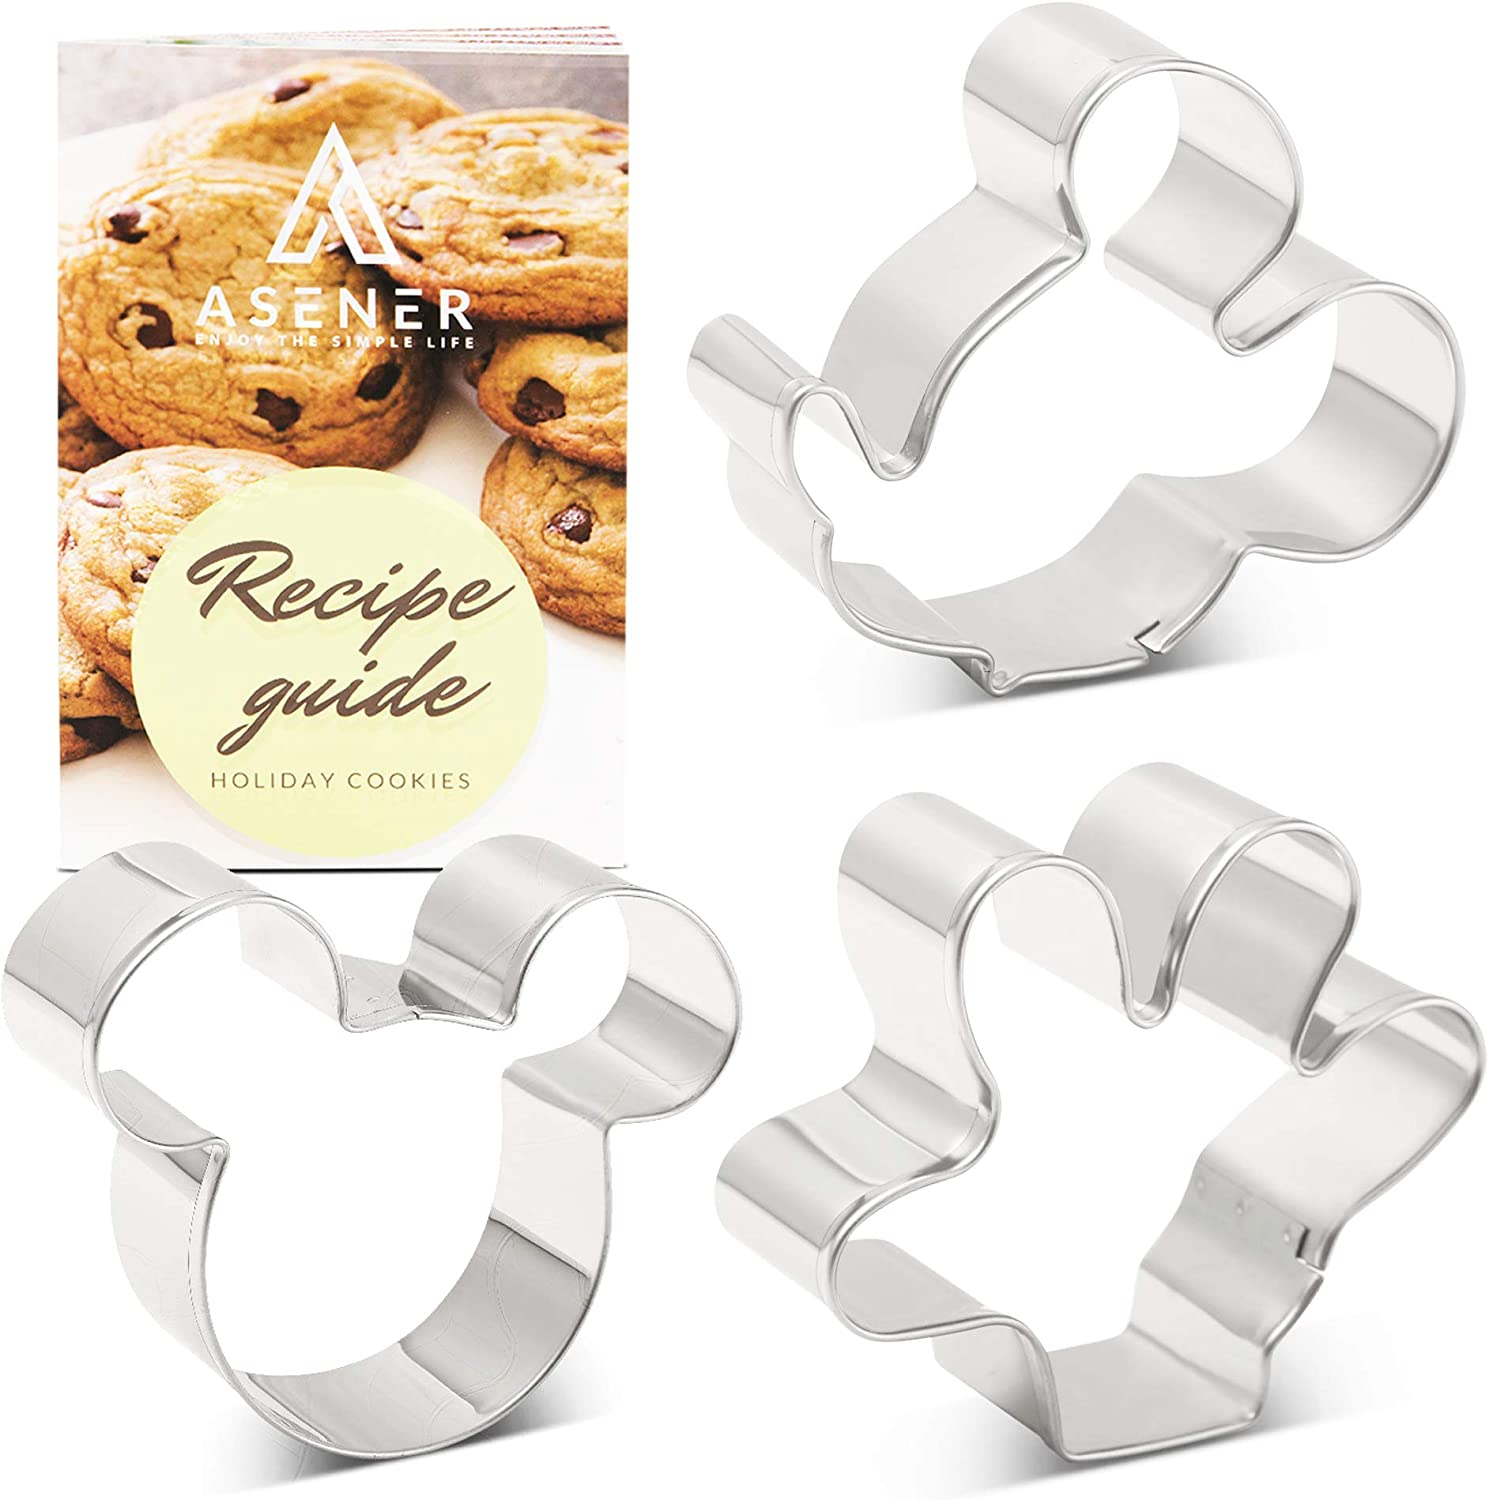 Asener Mickey Mouse Cookie Cutters Set [3-Piece] - Tin Plated Steel, Perfectly Designed, Mickey Mouse Ears, Mickey Side Face and Palm, 3 inch Durable Cookie Cutter with Recipe Book